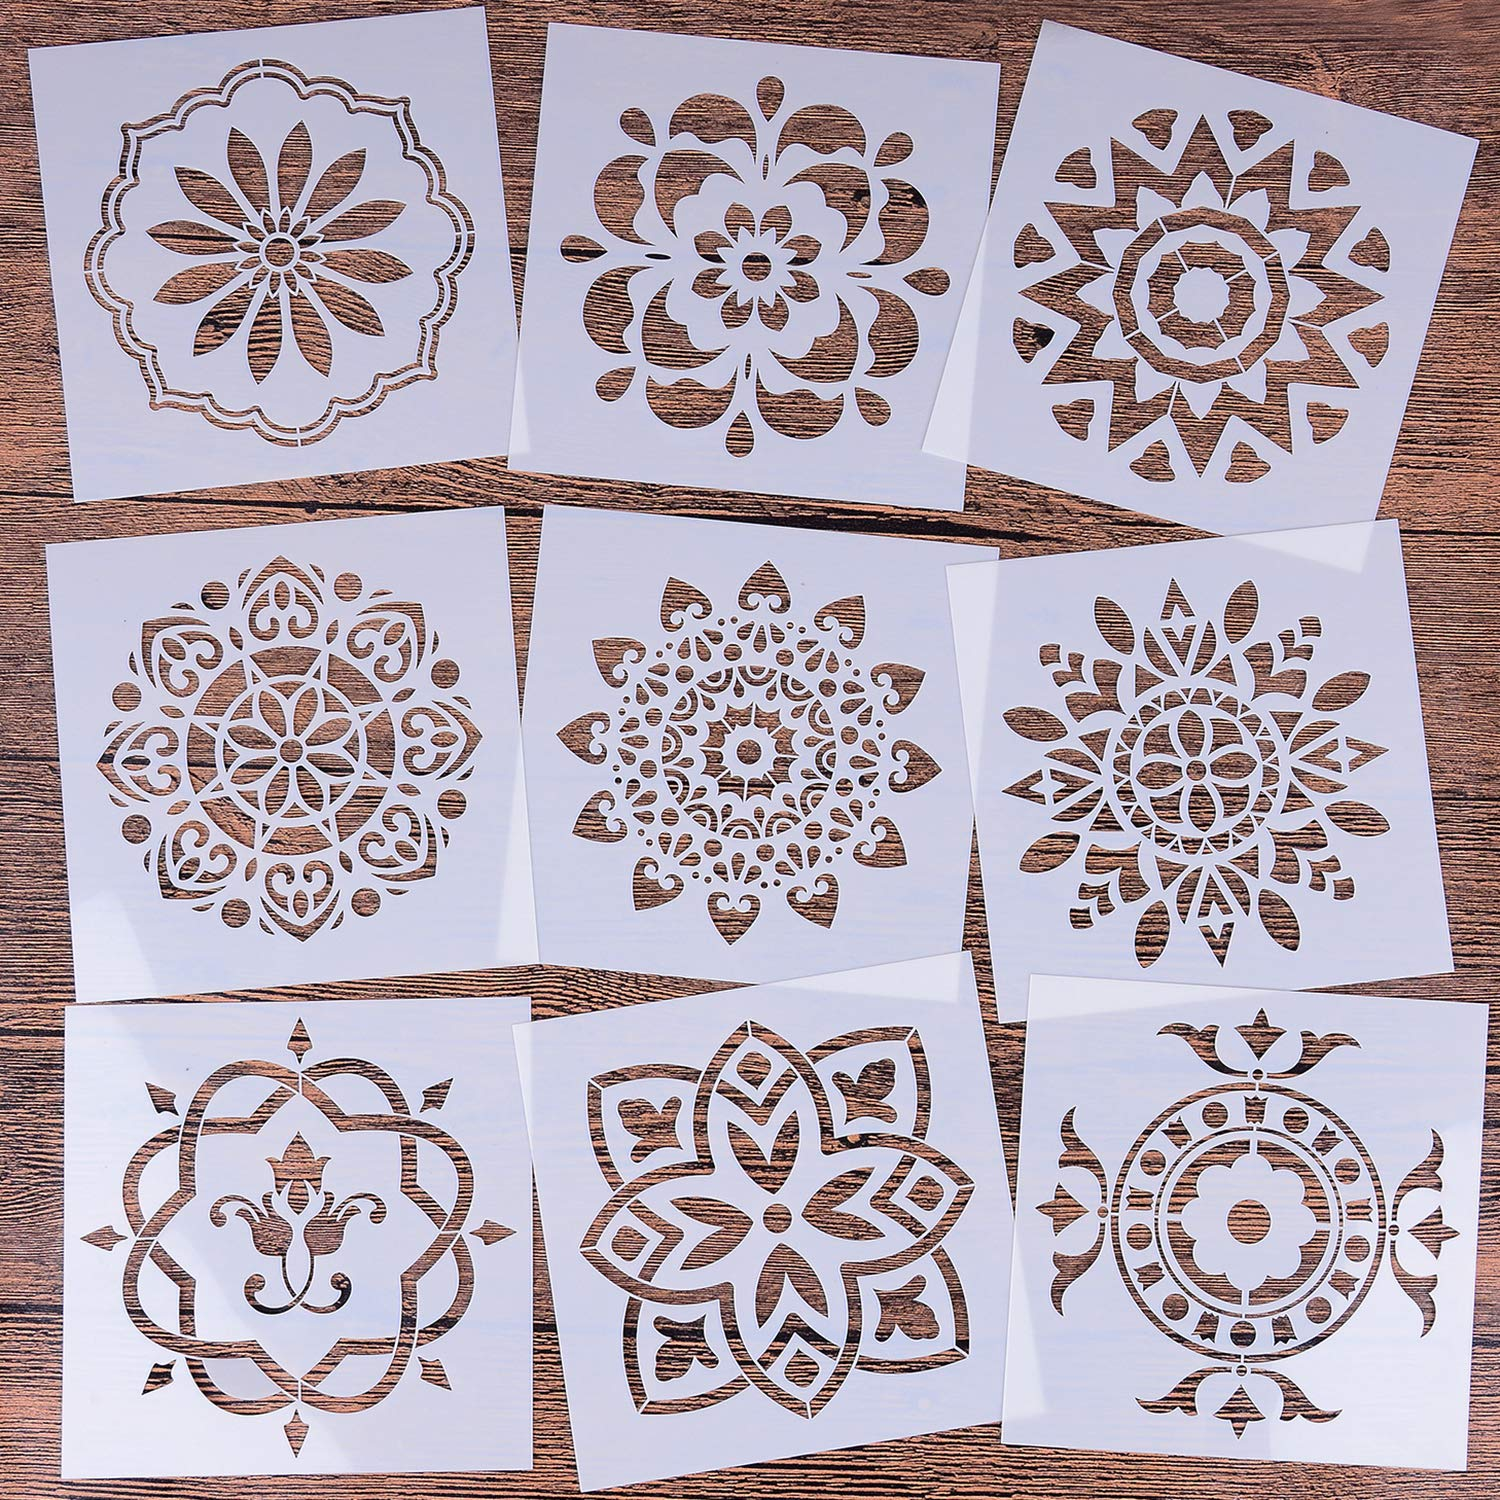 4fa456be2 LOCOLO Mandala Reusable Stencil Set of 9 (6x6 inch) Painting Stencil, Laser  Cut Painting Template for DIY Decor, Painting on Wood, Airbrush, Rocks and  Walls ...